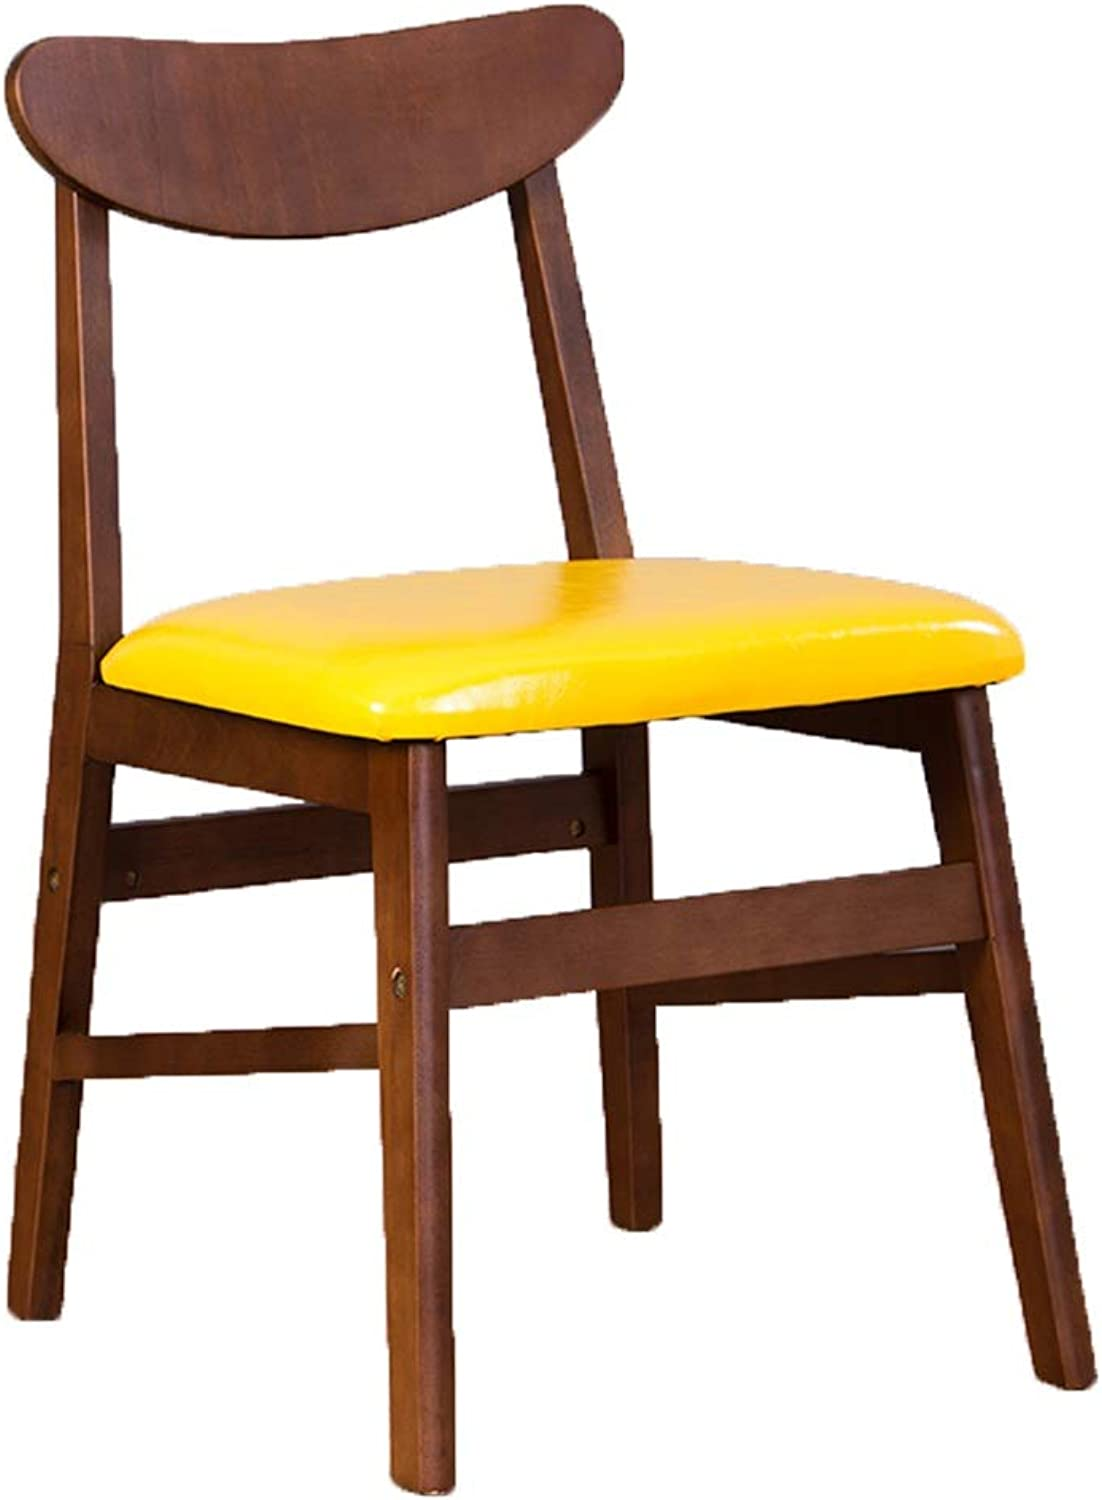 Dining Chairs Dining Table Chair Kitchen Chairs- Household Modern Minimalist Restaurant Dining Table and Desk Chair Leisure Stool Back Nordic HENGXIAO (color   Yellow, Size   Brown Legs)